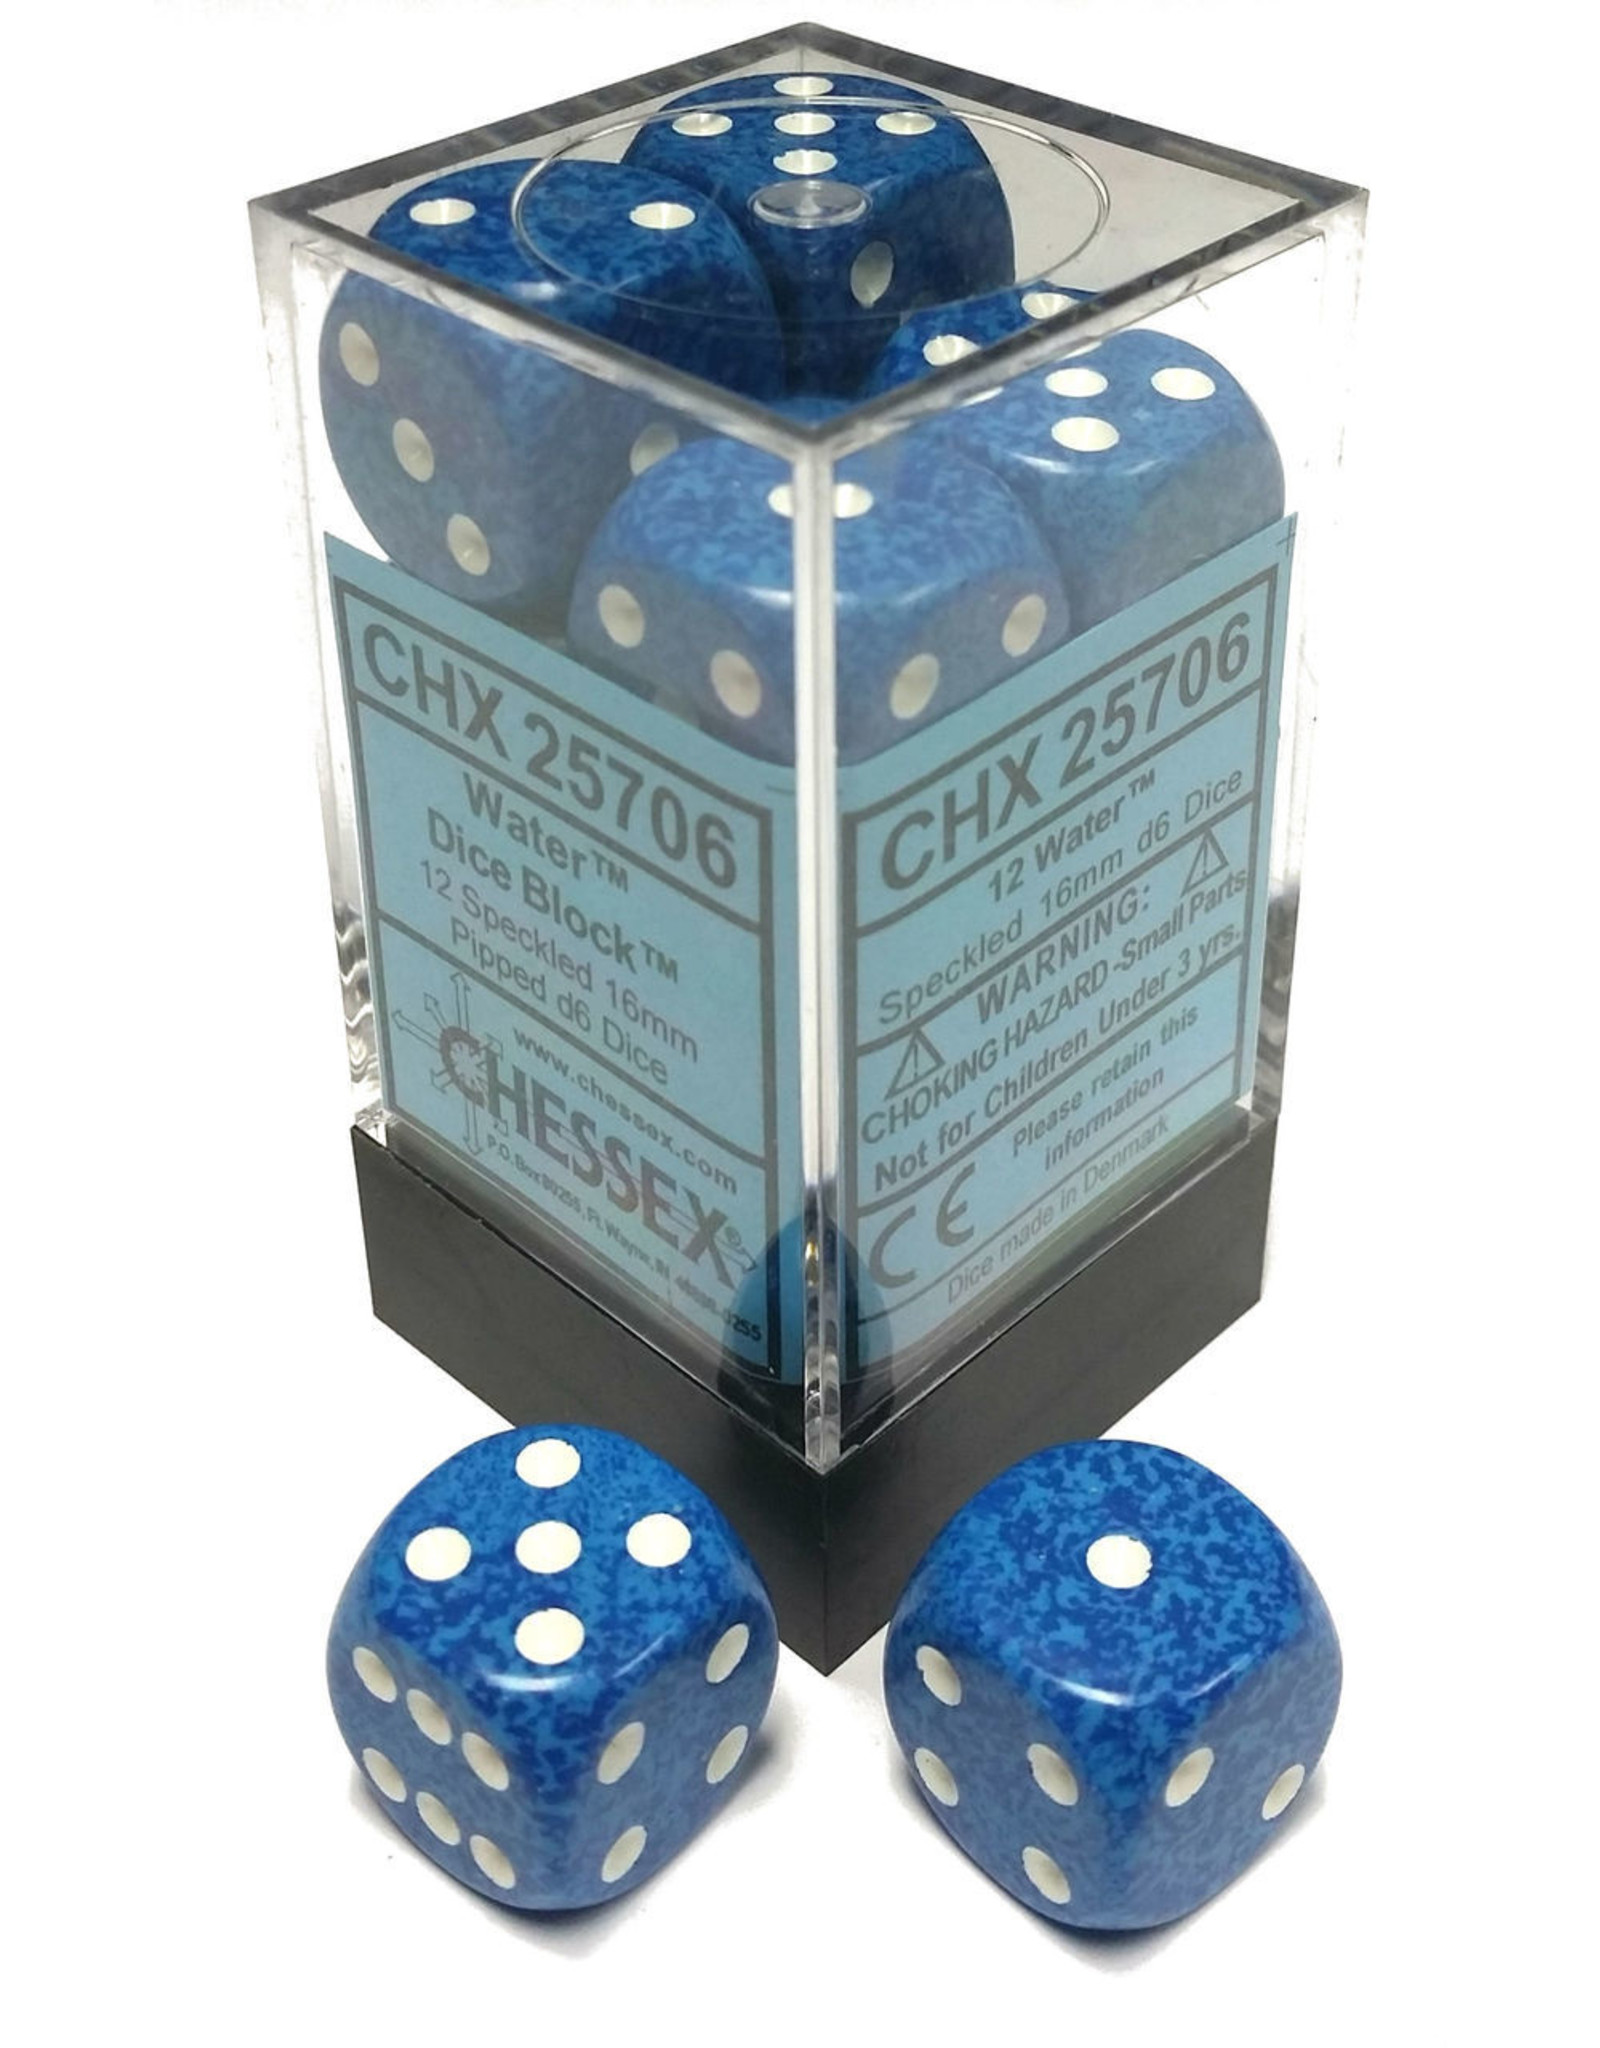 Chessex Water D6